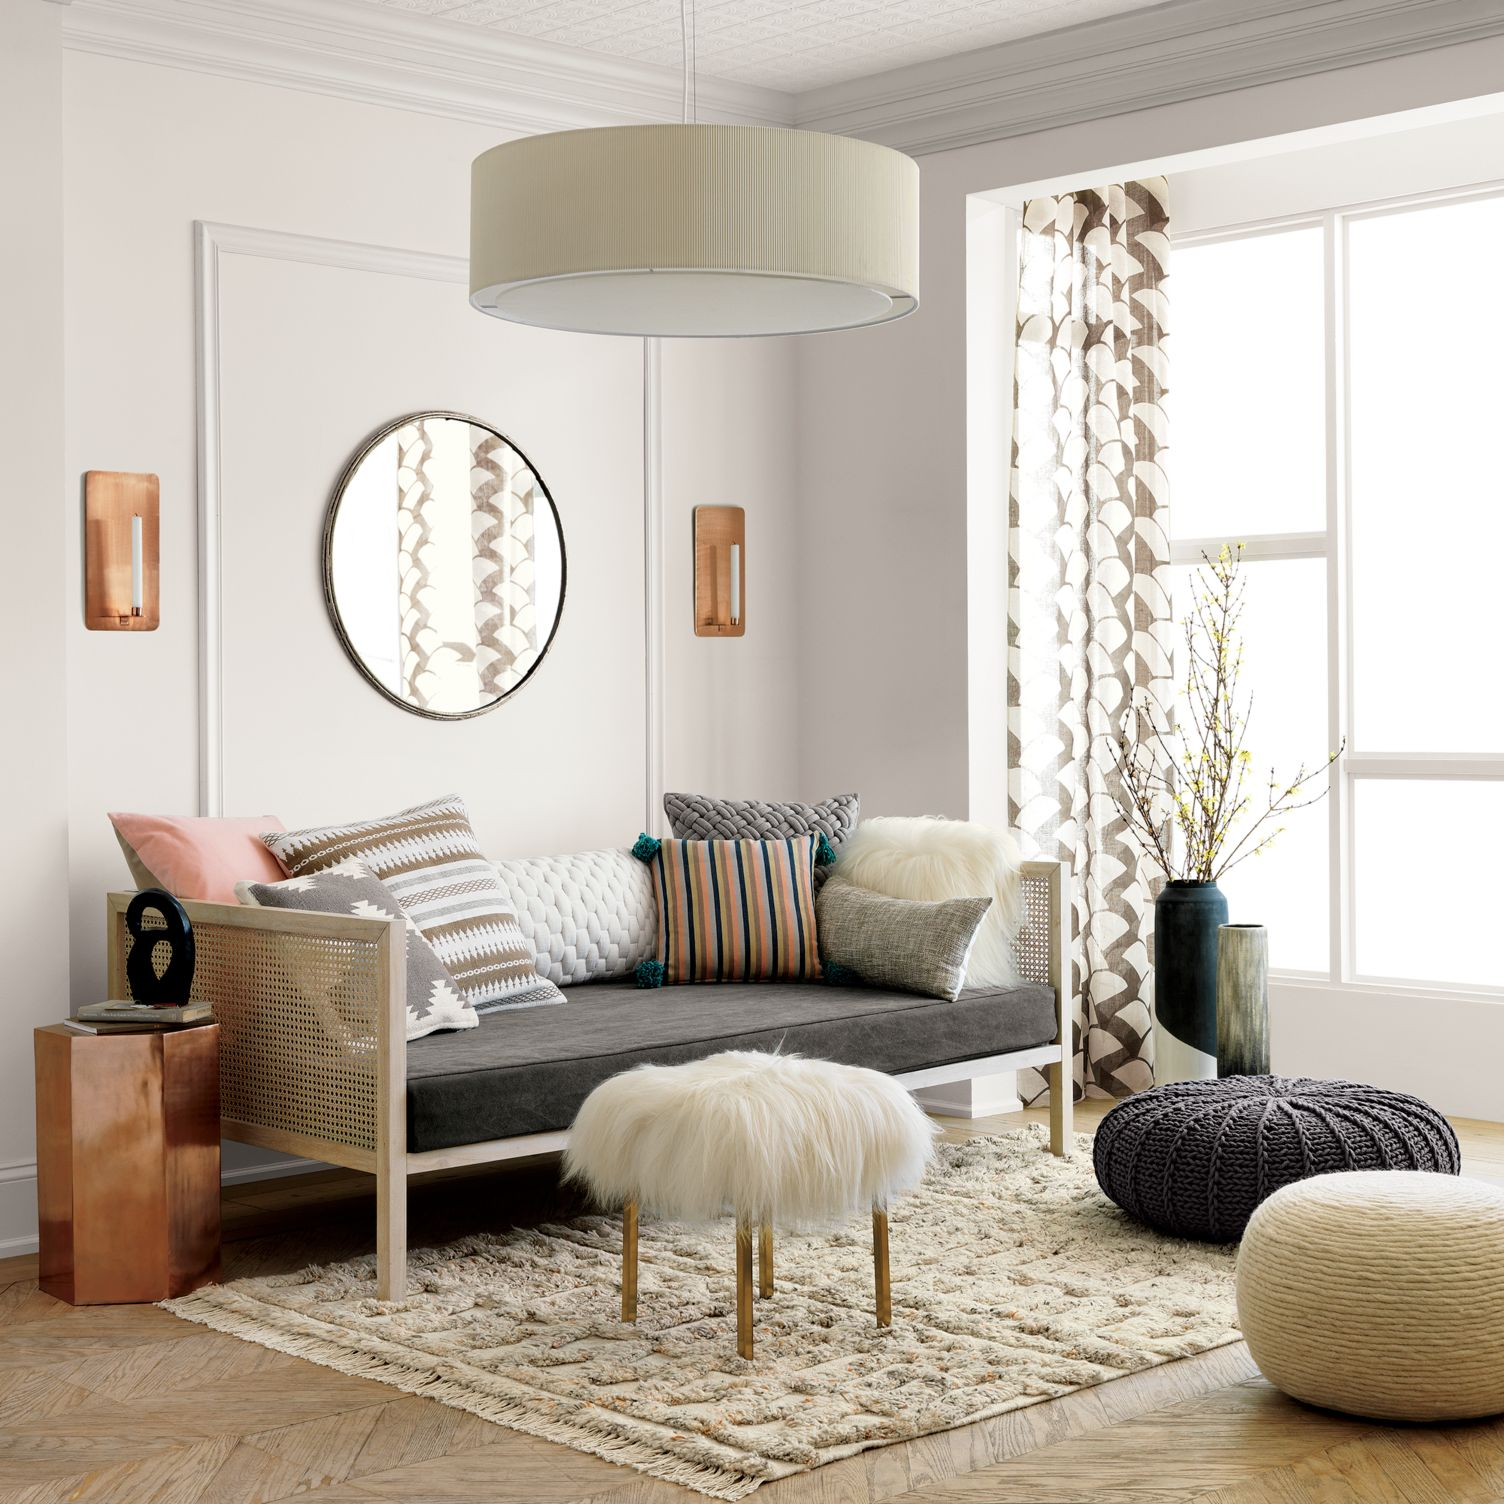 Boho daybed from CB2